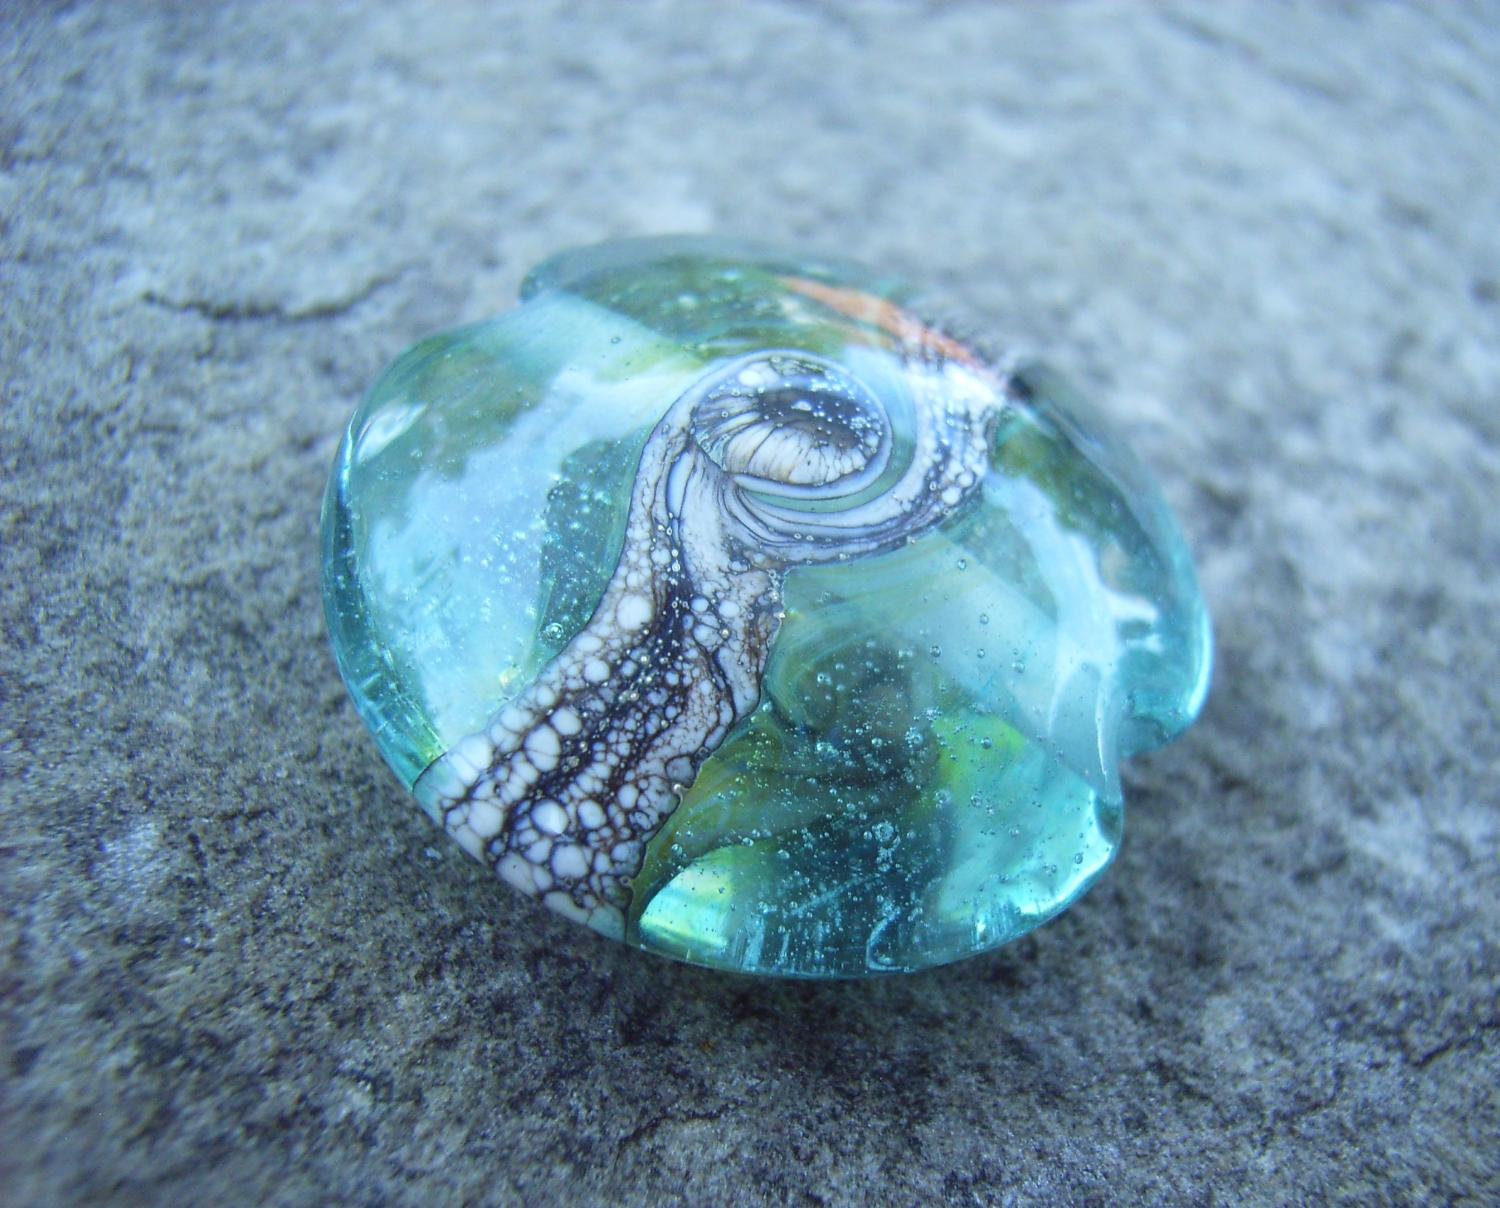 Silvered Ivory Swirl 18mm Aqua Lentil Handmade Artisan Glass Lampwork Beads - By the Bead, (Made to Order) f